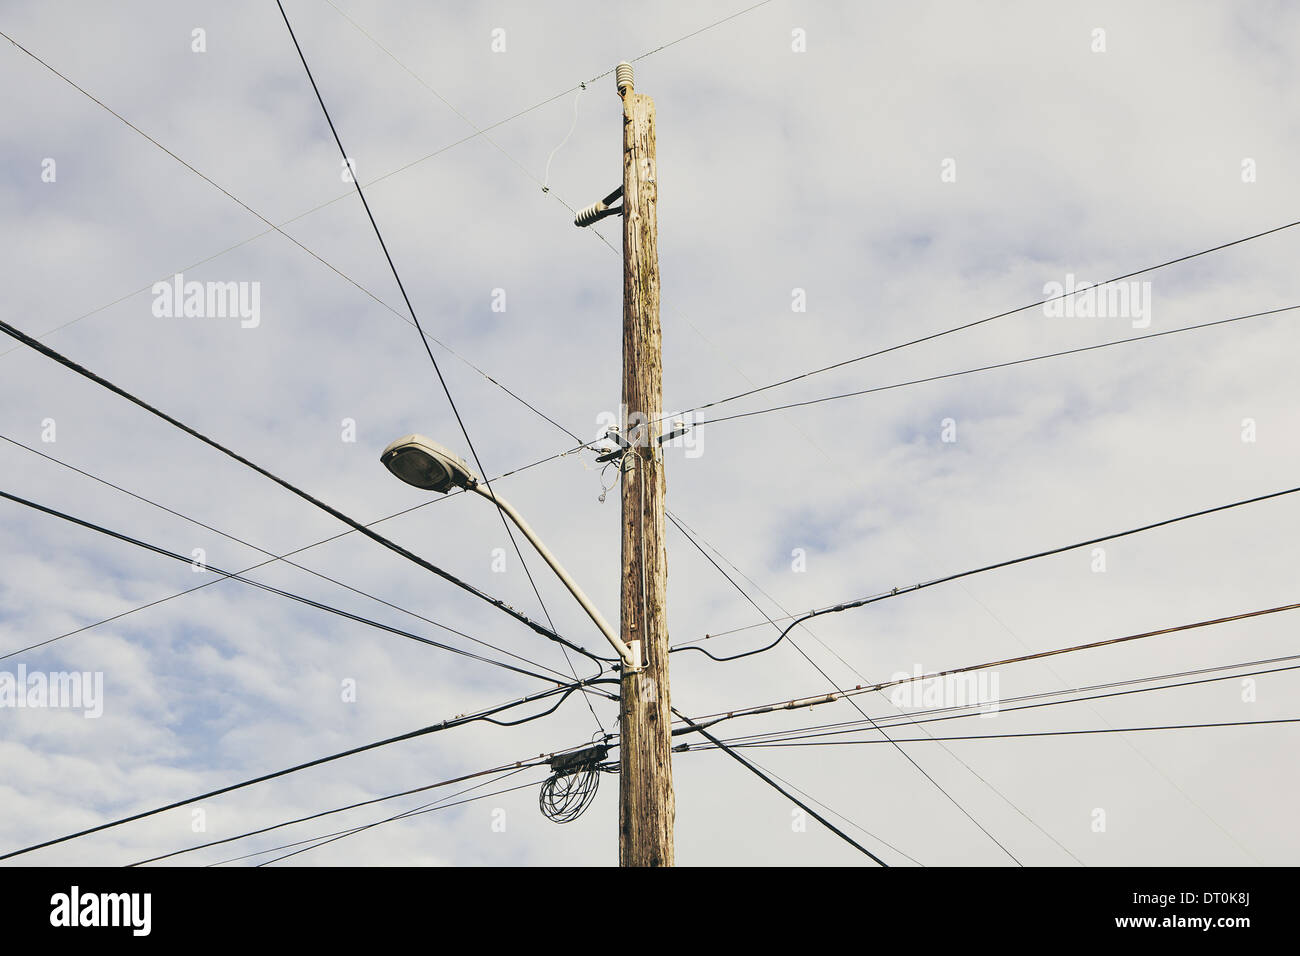 Telephone Wires Stock Photos & Telephone Wires Stock Images - Alamy